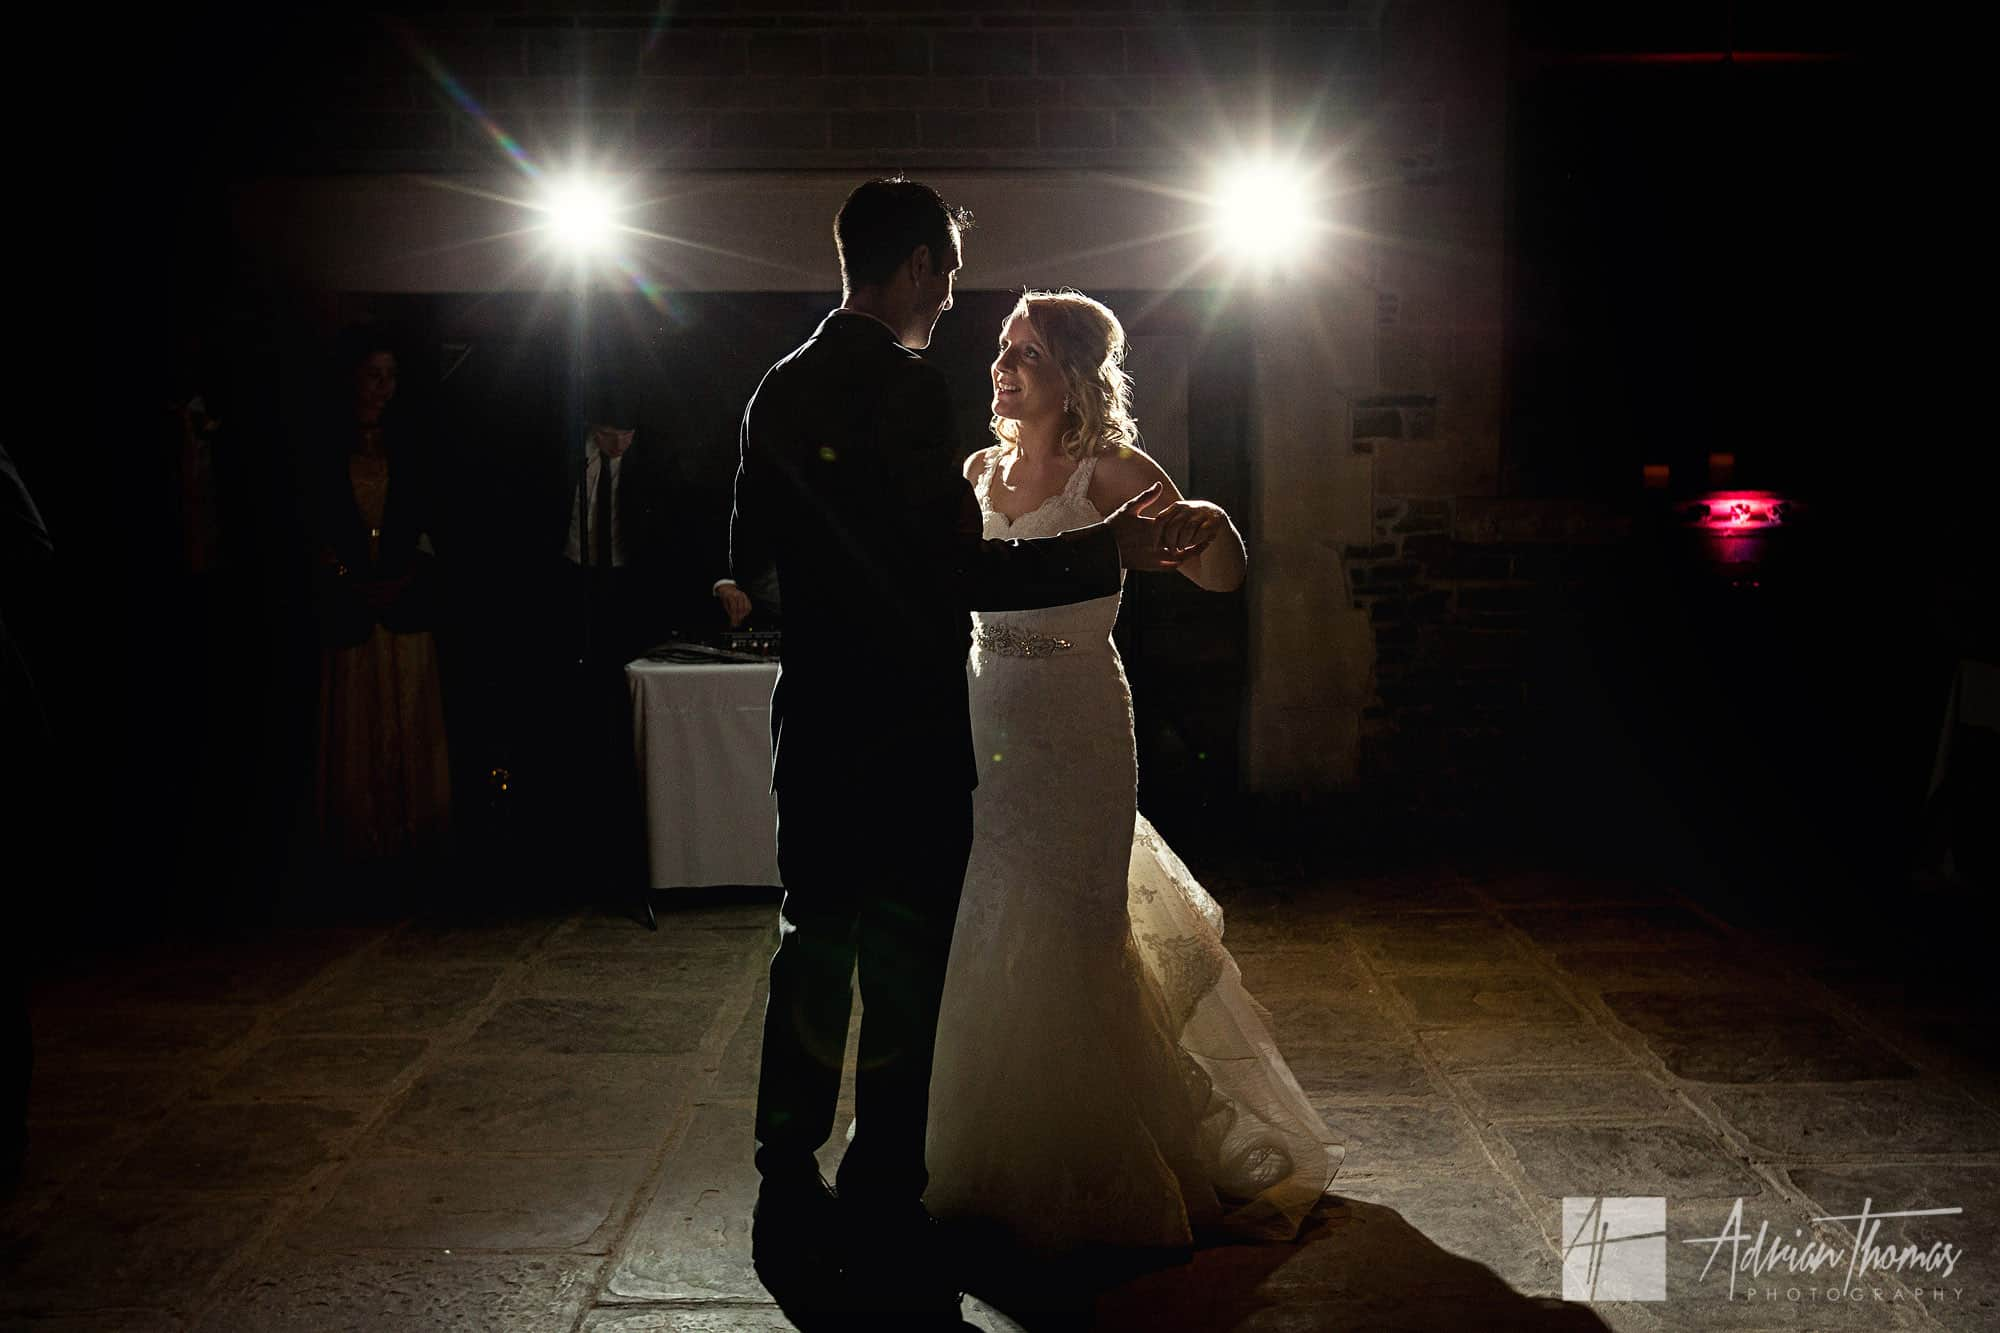 Bride and groom first dance at their Caerphilly Castle wedding.